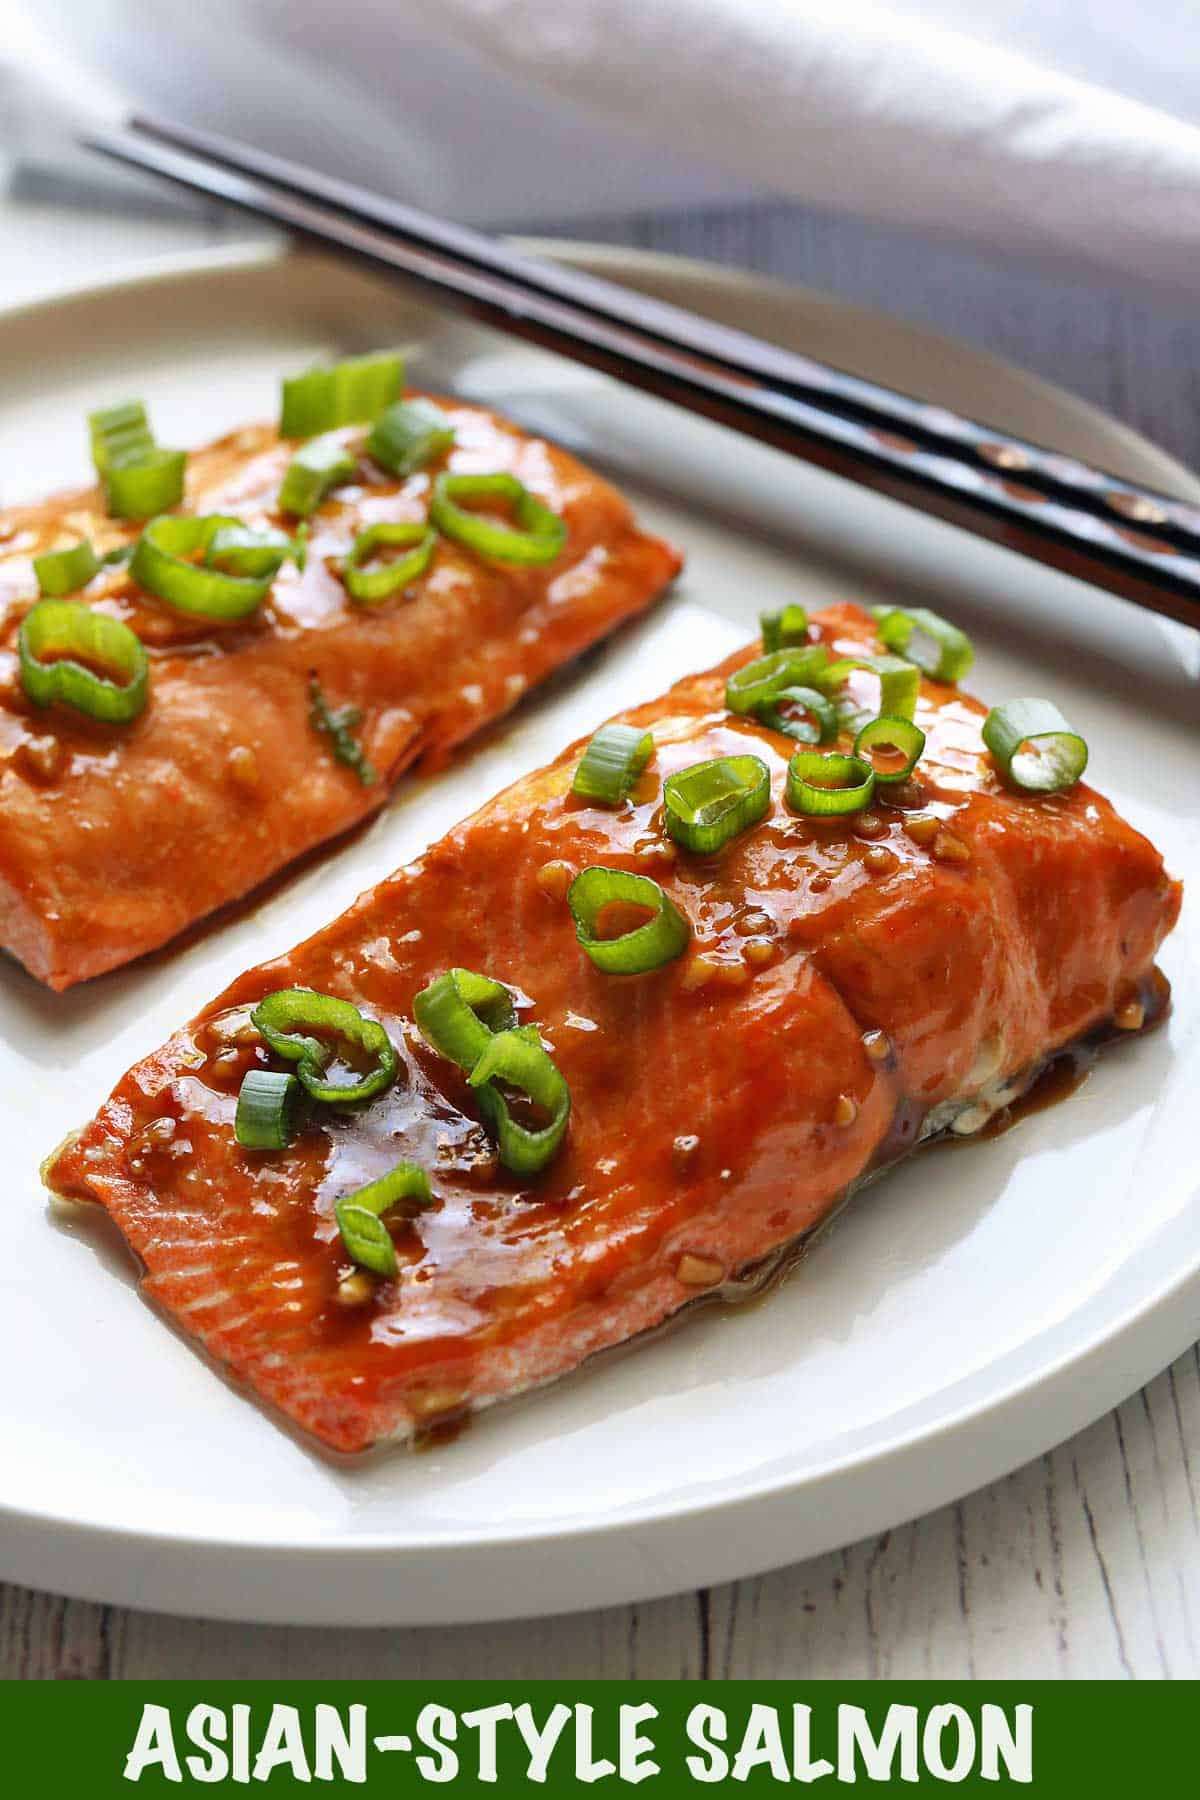 Salmon coated in Asian-style glazes served on a white plate with chopsticks.